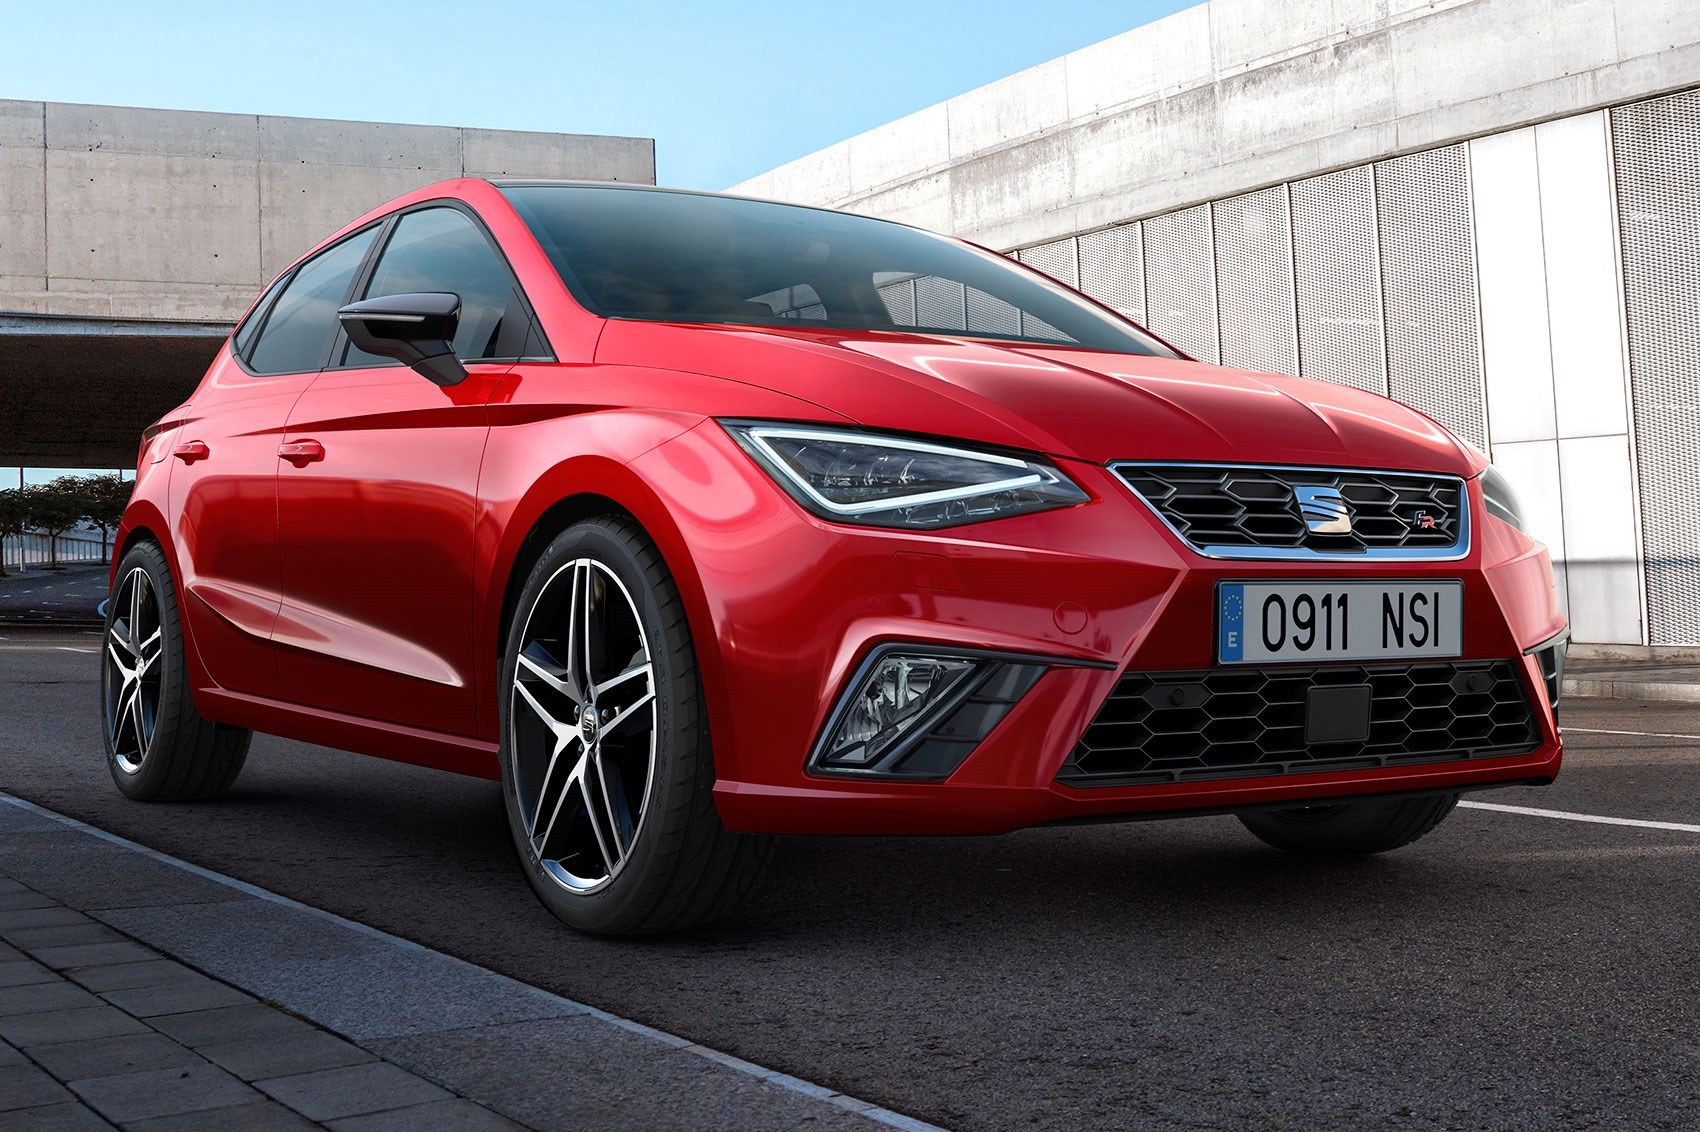 New Seat Ibiza Revealed A Little Leon For 2017 By Car